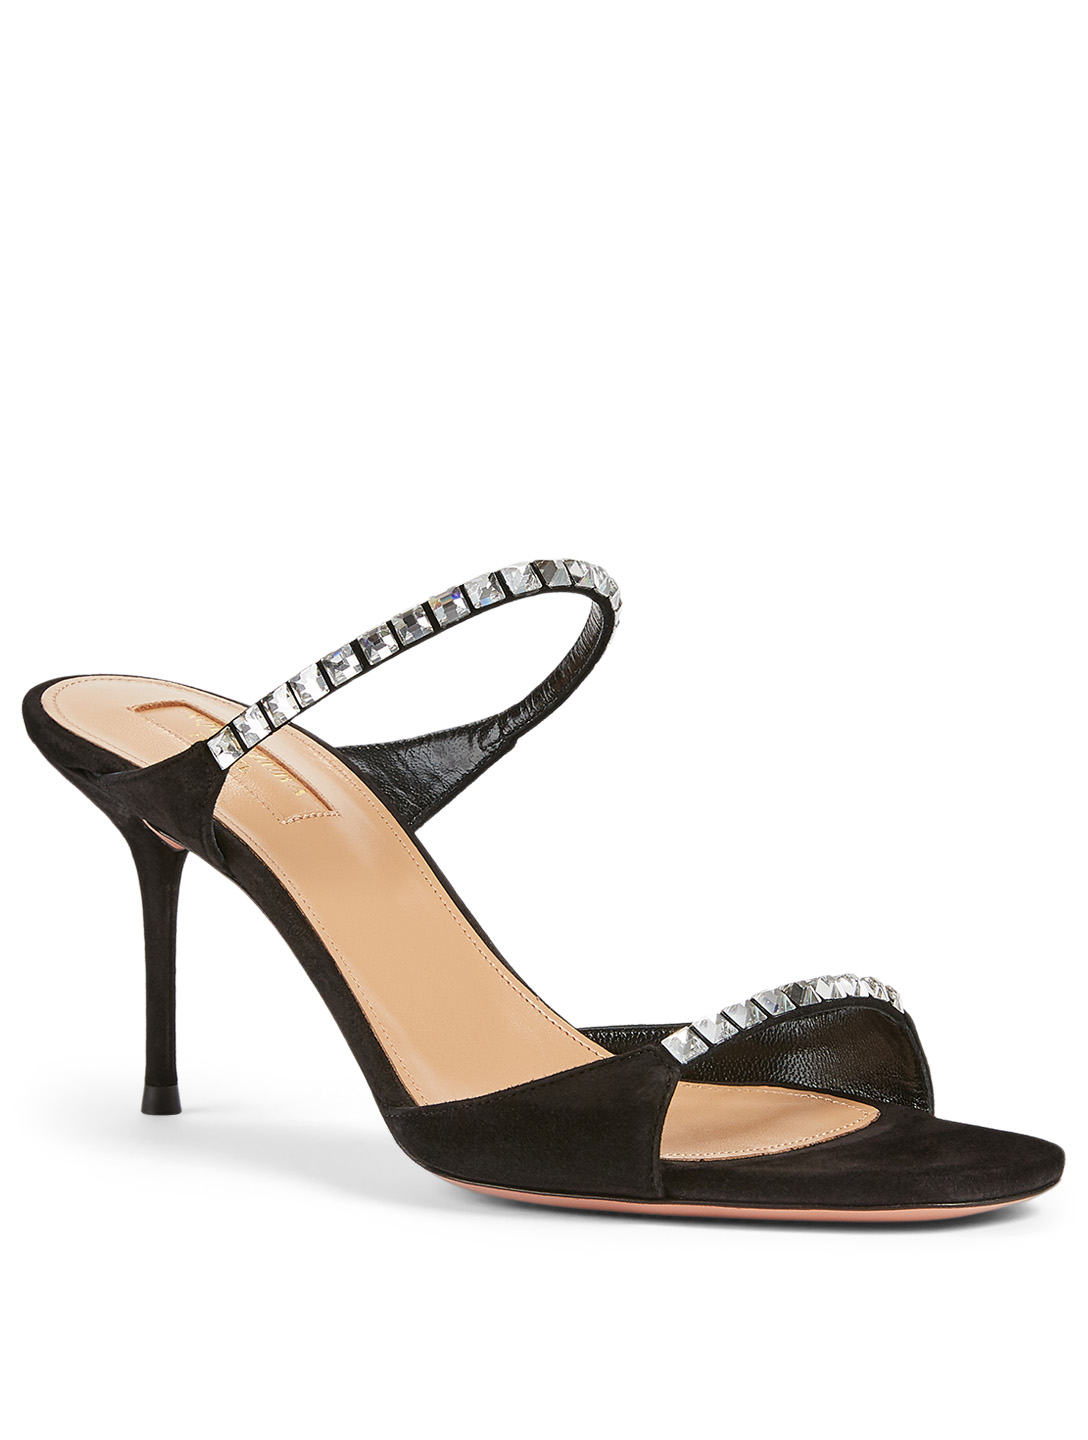 AQUAZZURA Diamante 75 Crystal Suede Heeled Sandals Women's Black